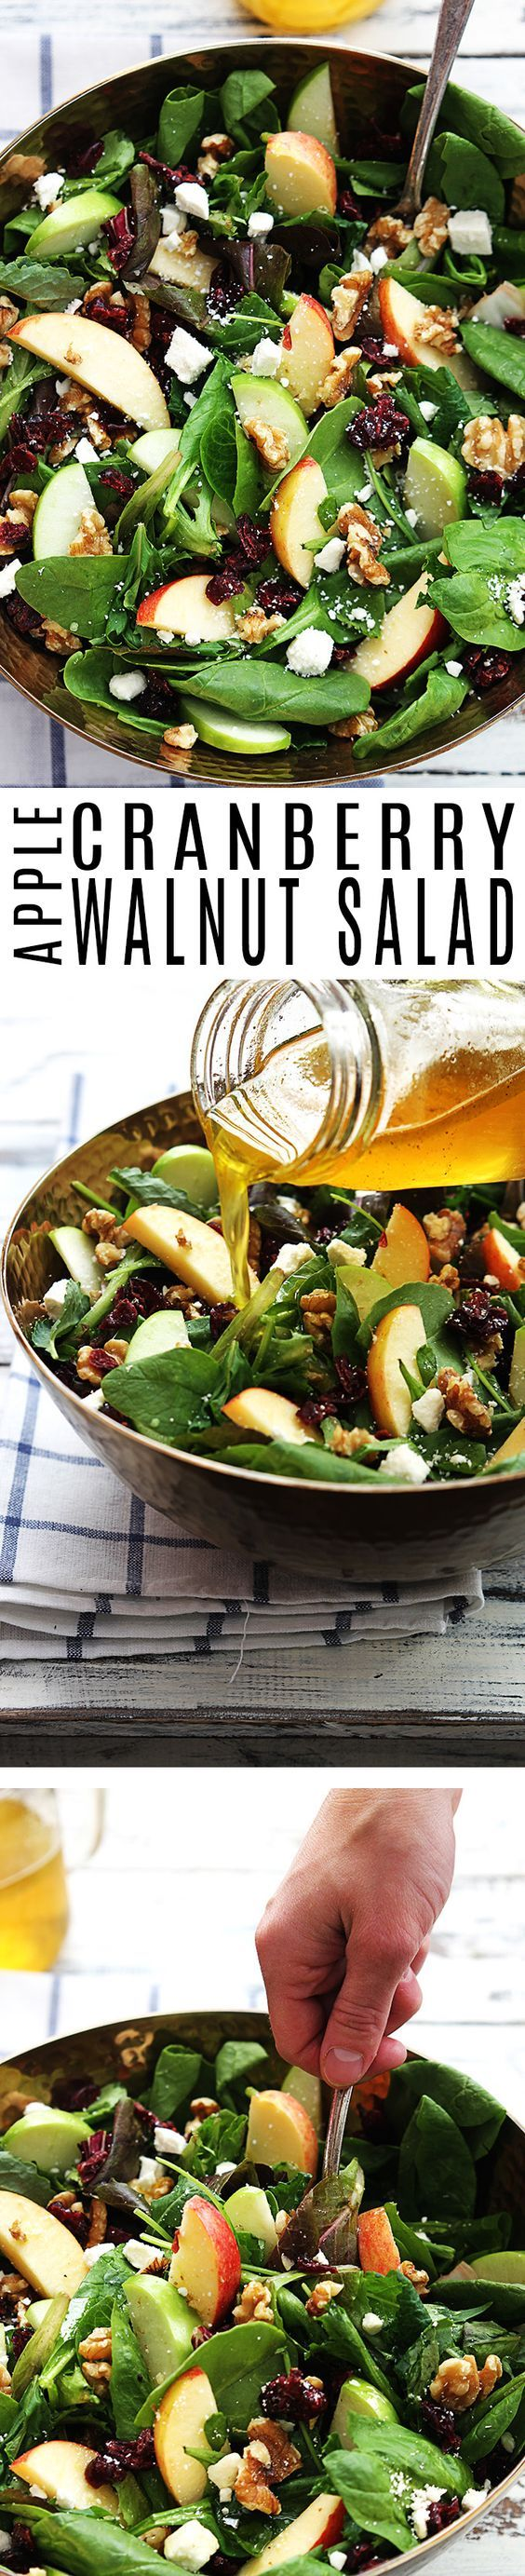 Crisp apples, dried cranberries, feta cheese, and hearty walnuts come together in a fresh Autumn salad.: